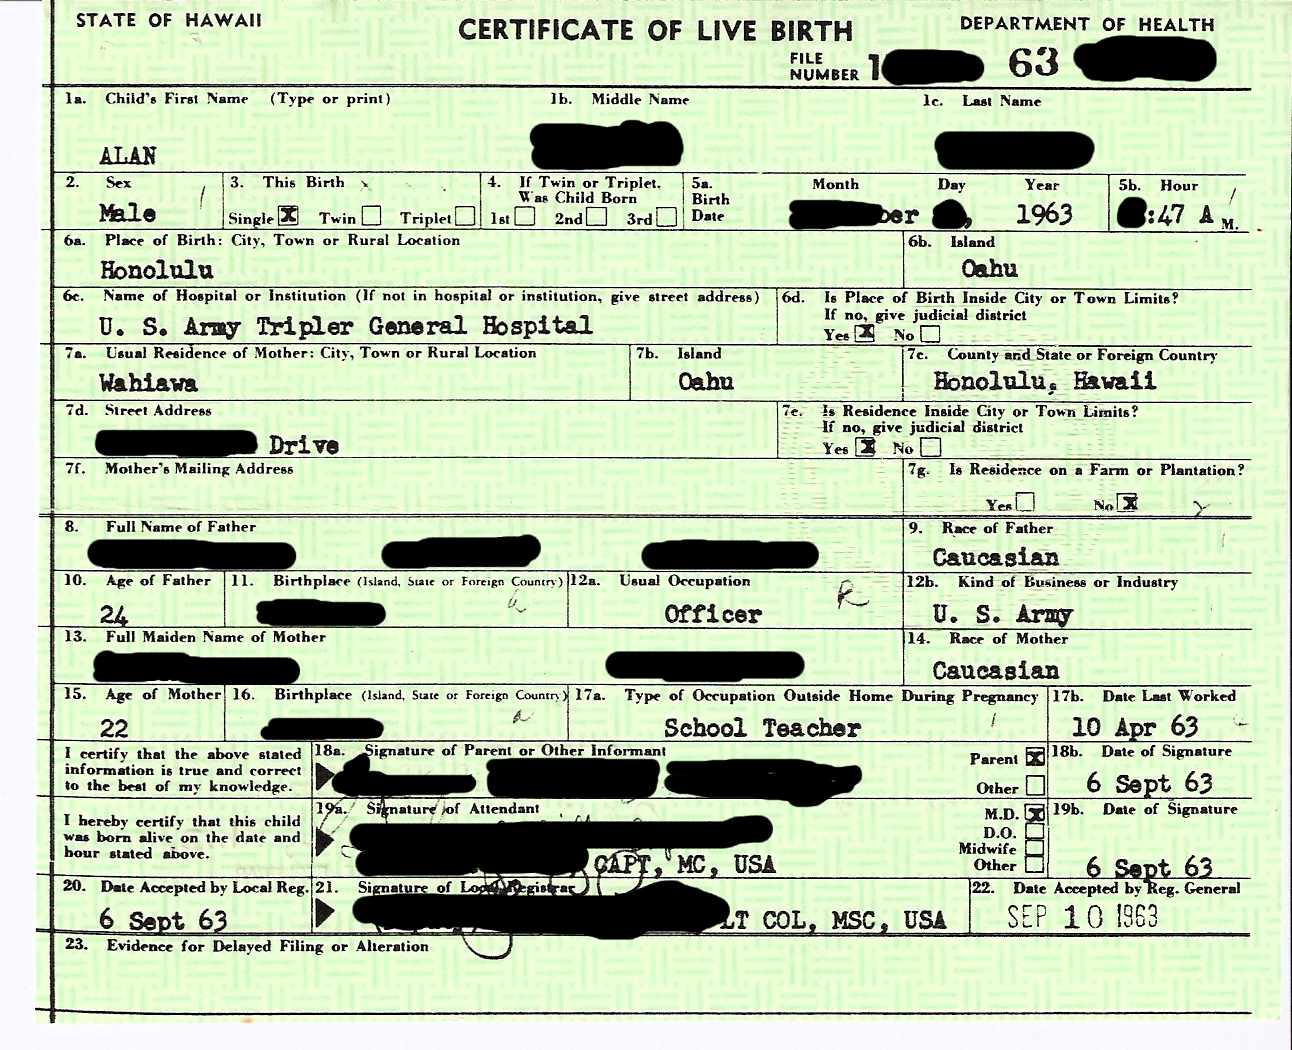 http://www.greatdreams.com/2008/hawaii-birth-certificate-1963.jpg